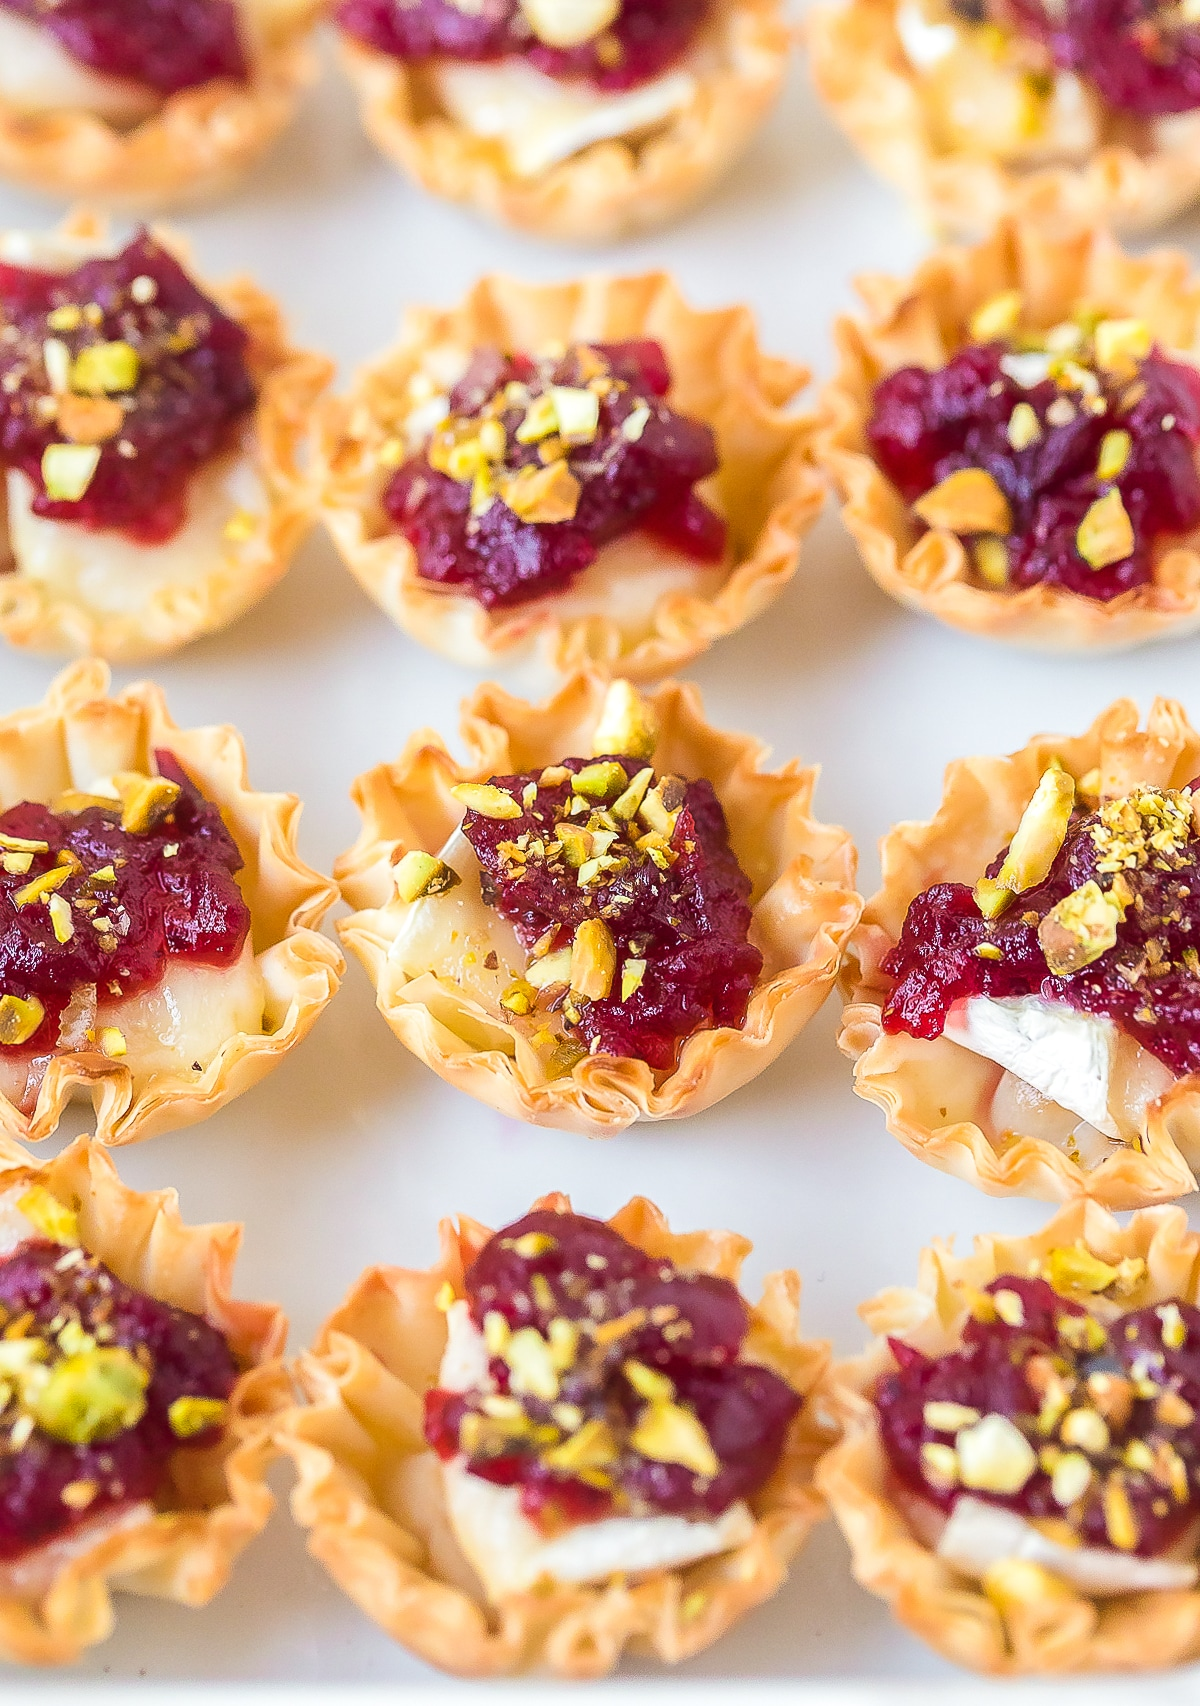 Baked Brie Bites with Cranberry Sauce Recipe #ASpicyPerspective #brie #baked #cranberry